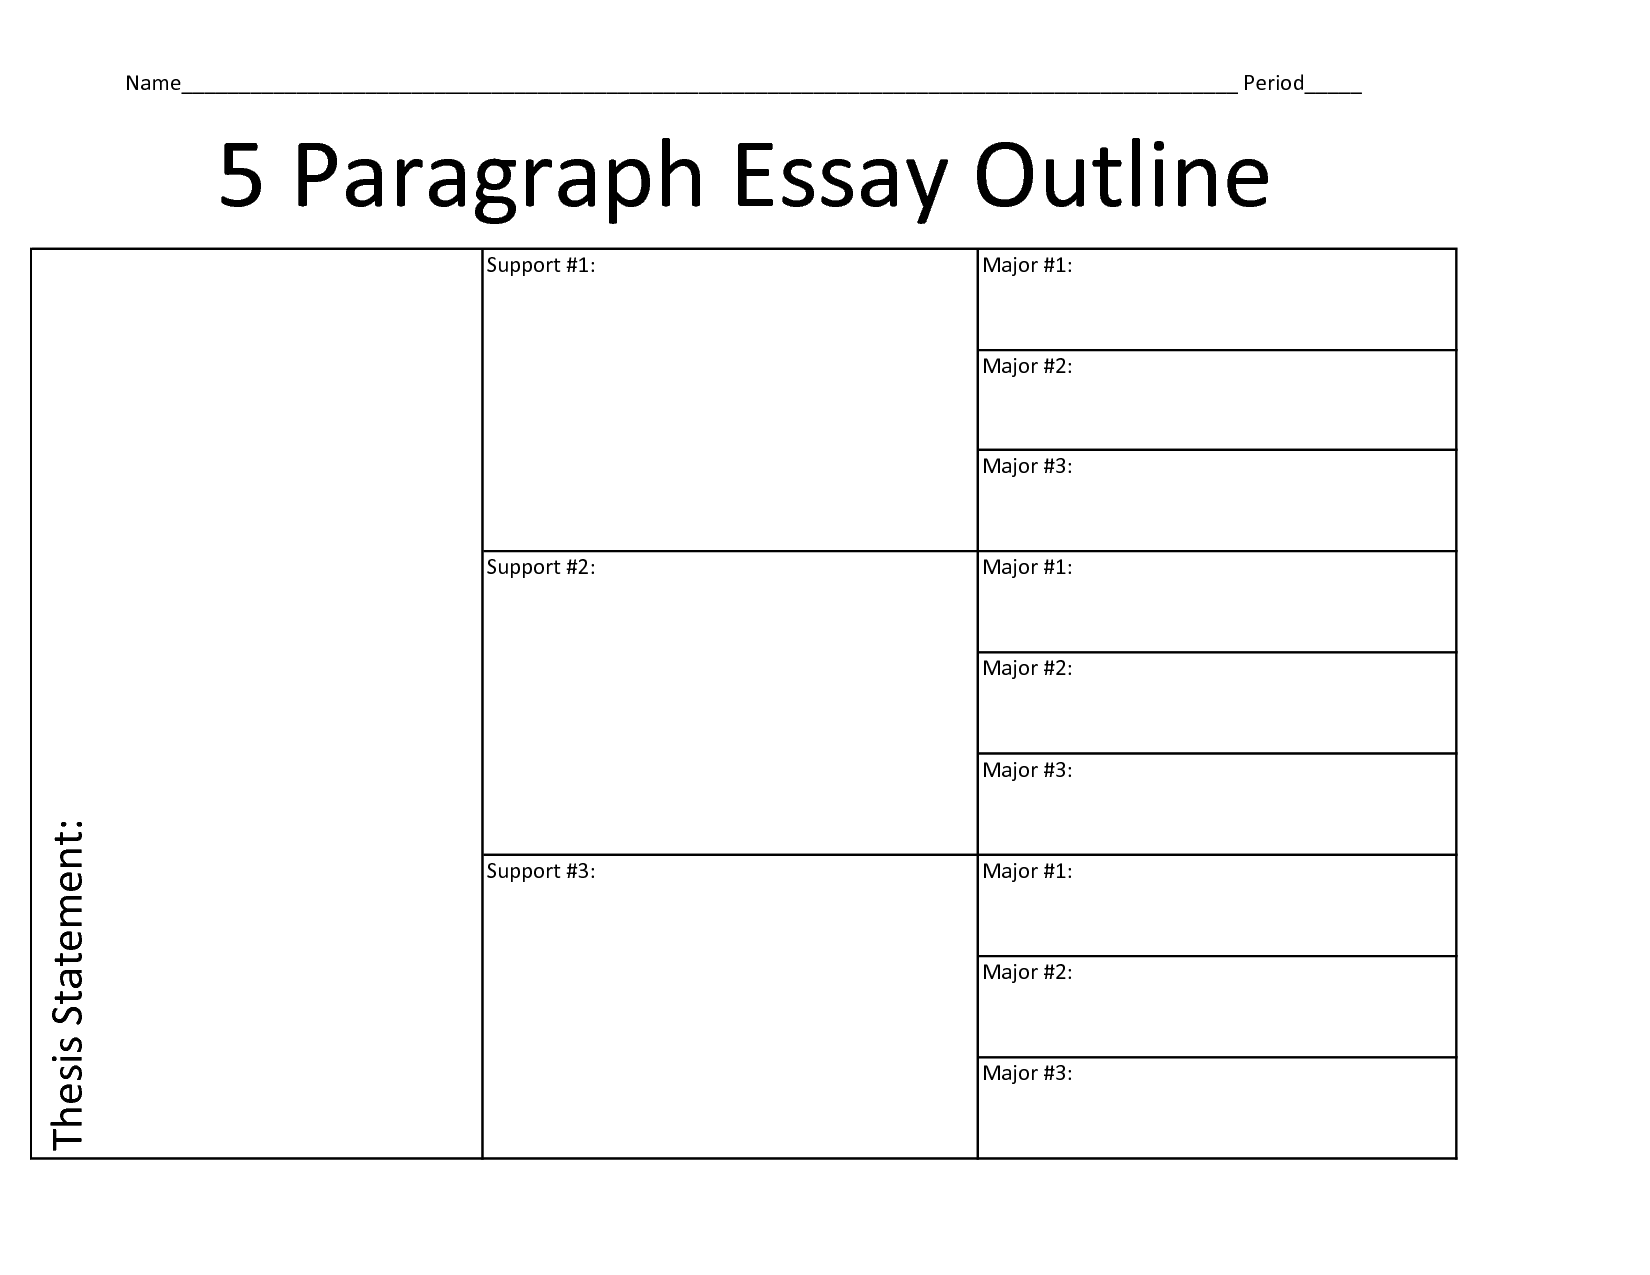 012 Paragraph Essay Graphic Organizer Example Organizers Executive Functioning Mr Brown039s Outline L Sensational 5 High School Pdf Full